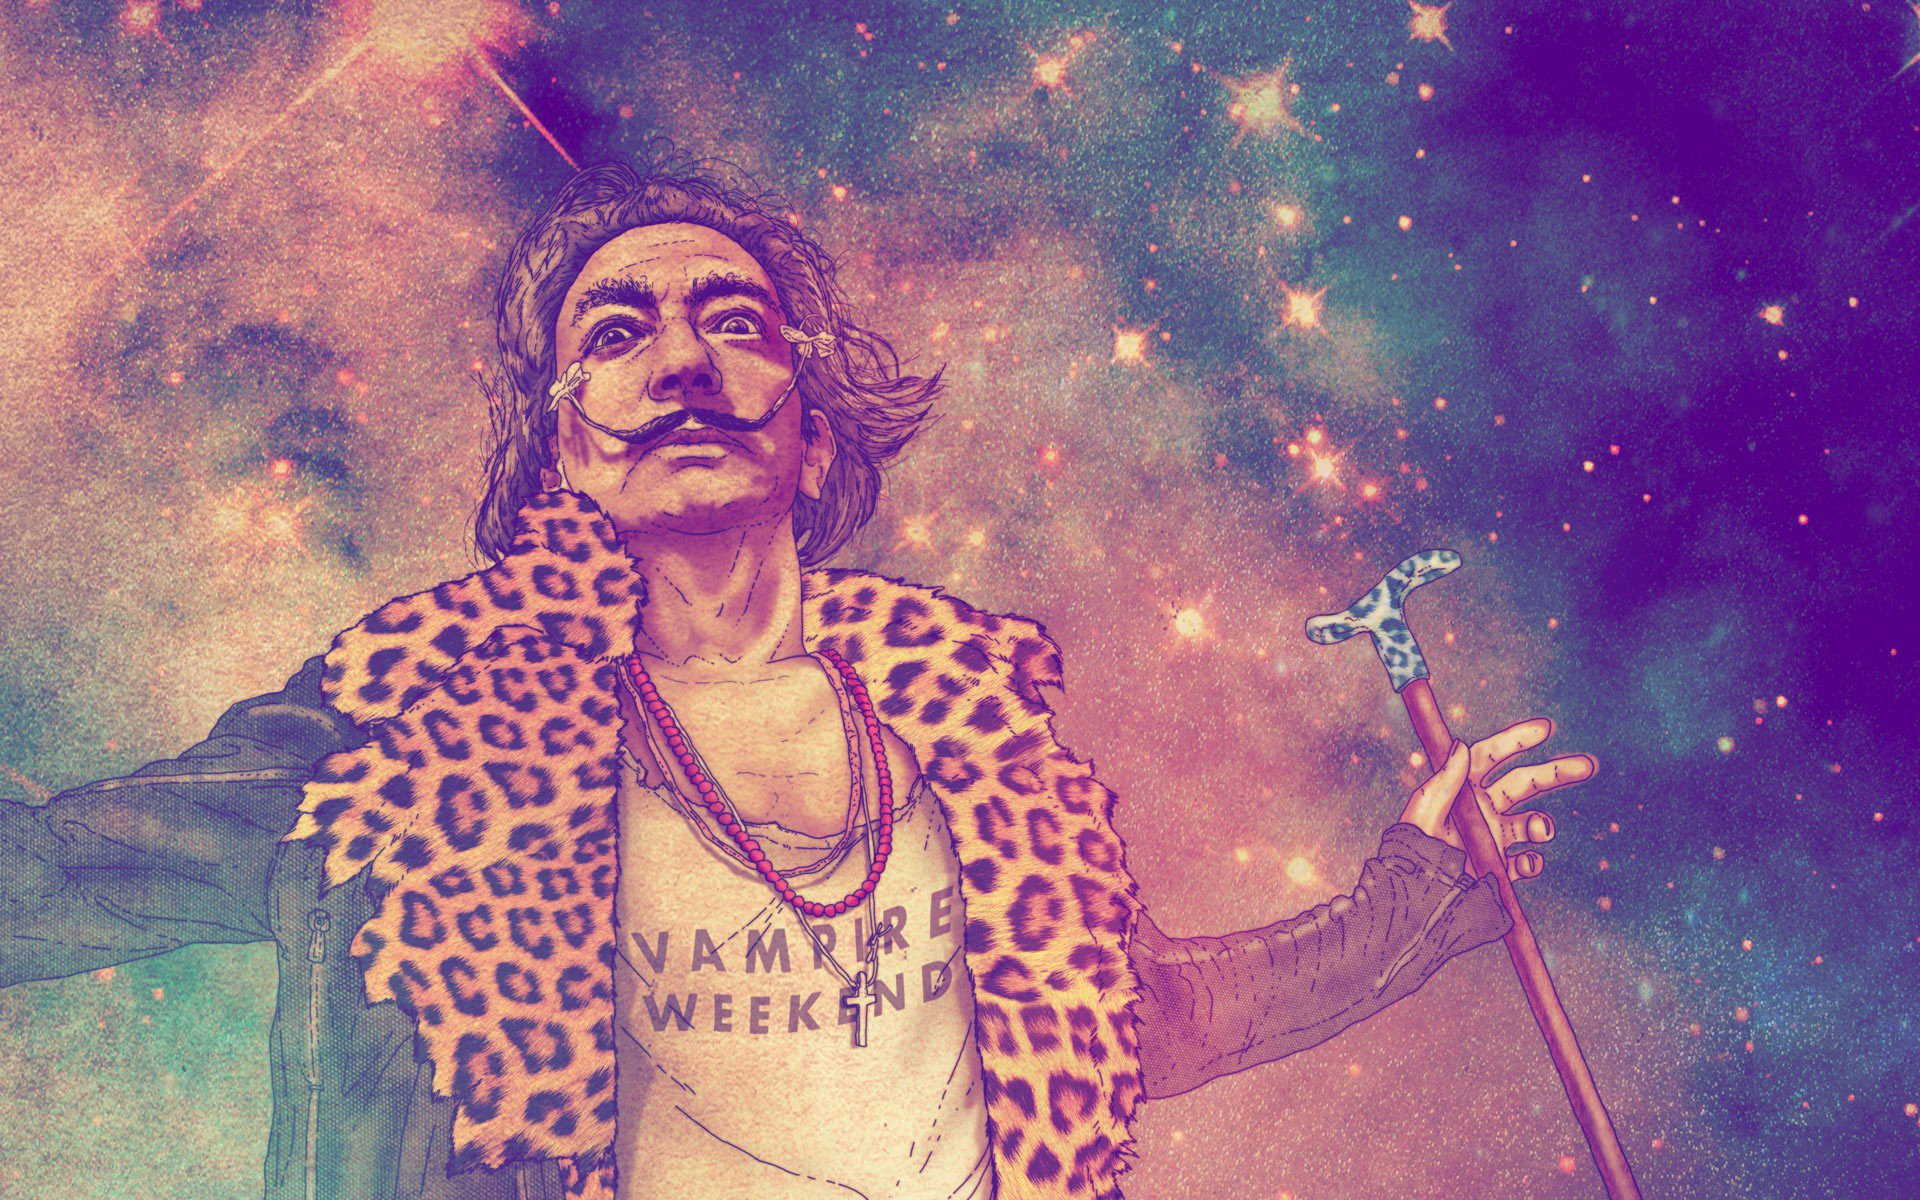 salvador dali full hd wallpaper and background image